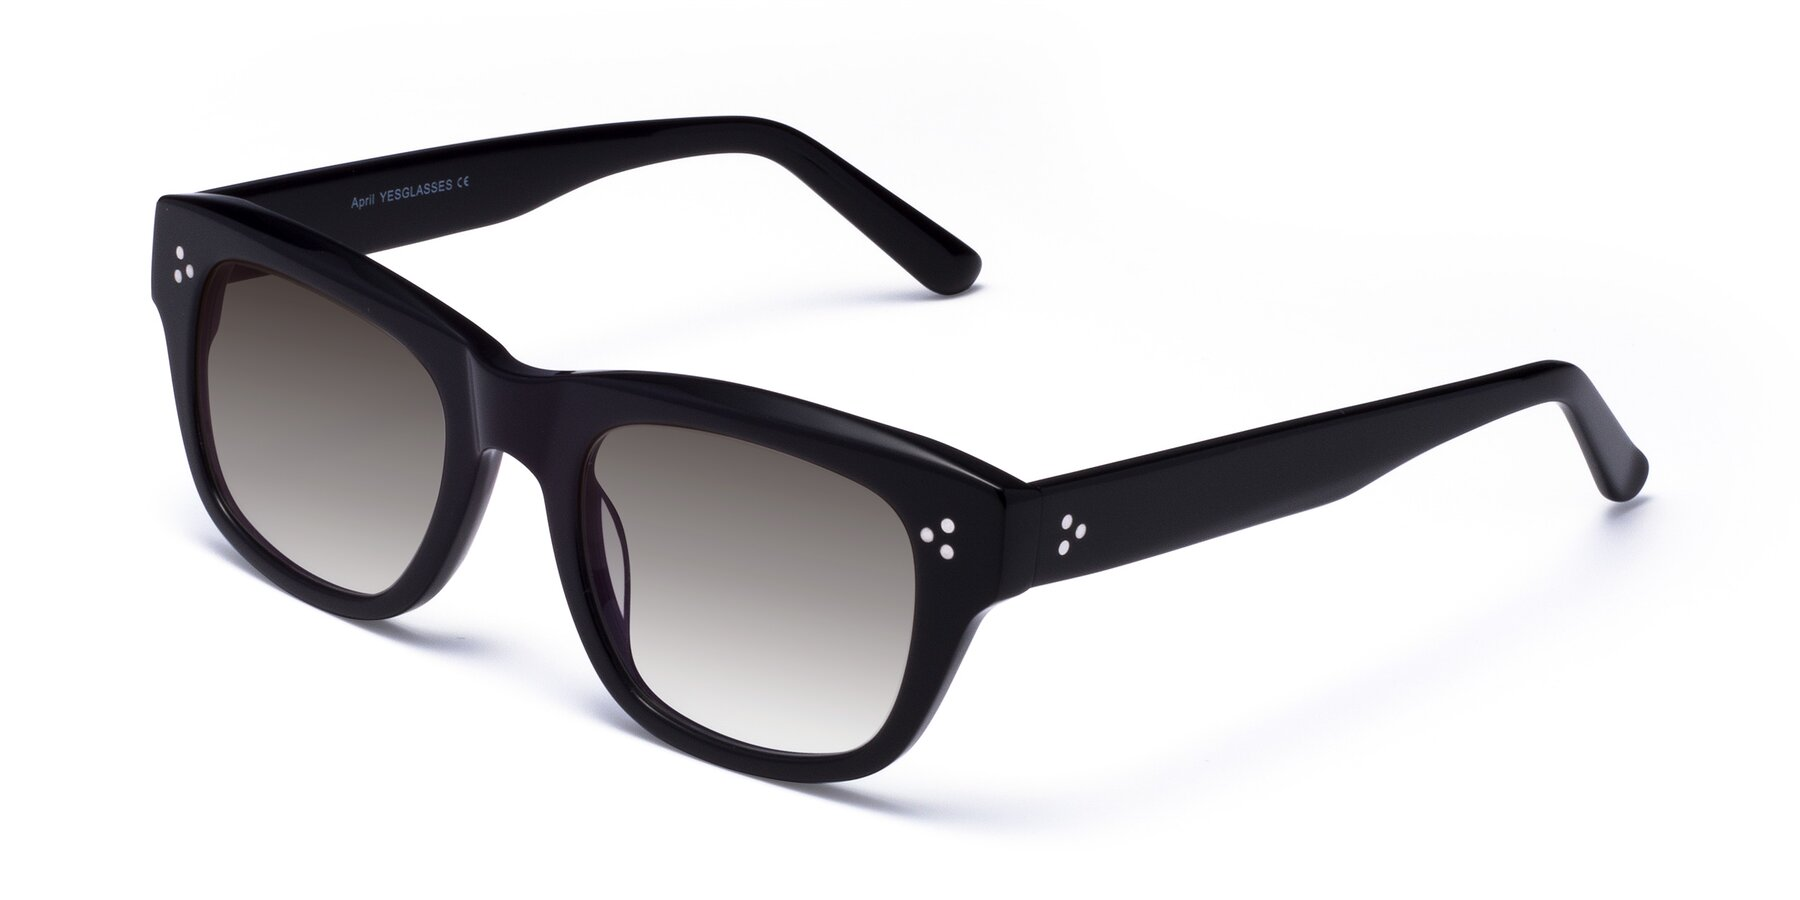 Angle of April in Black with Gray Gradient Lenses